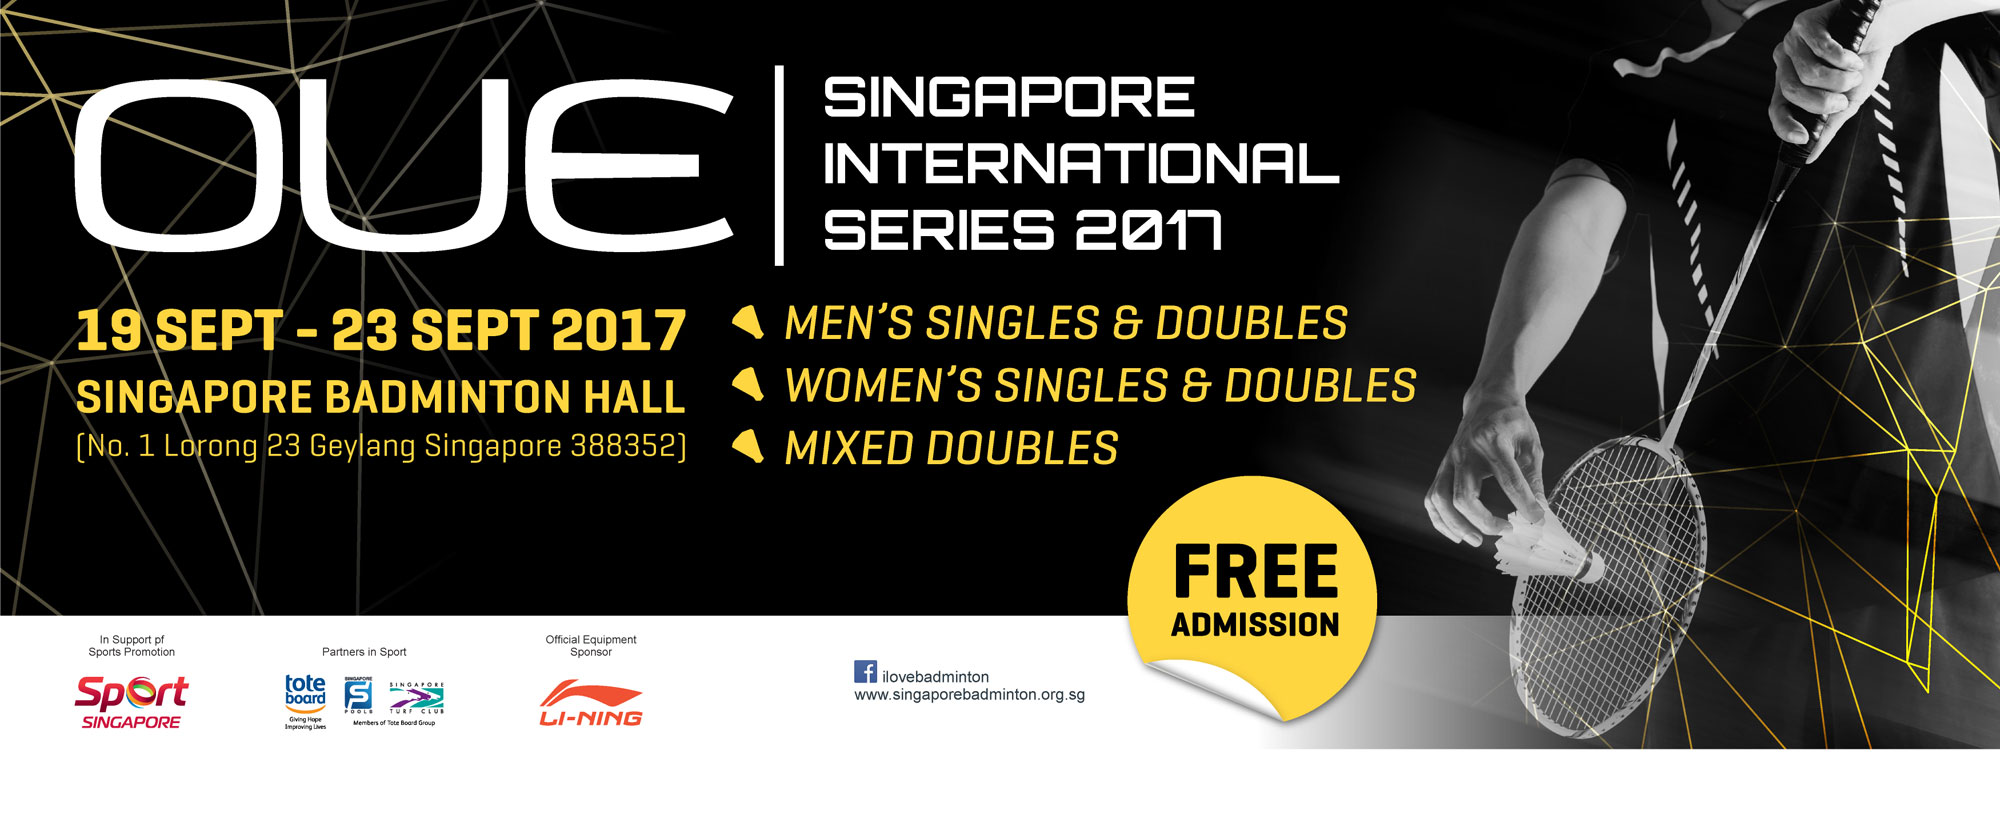 OUE Singapore International Series 2017